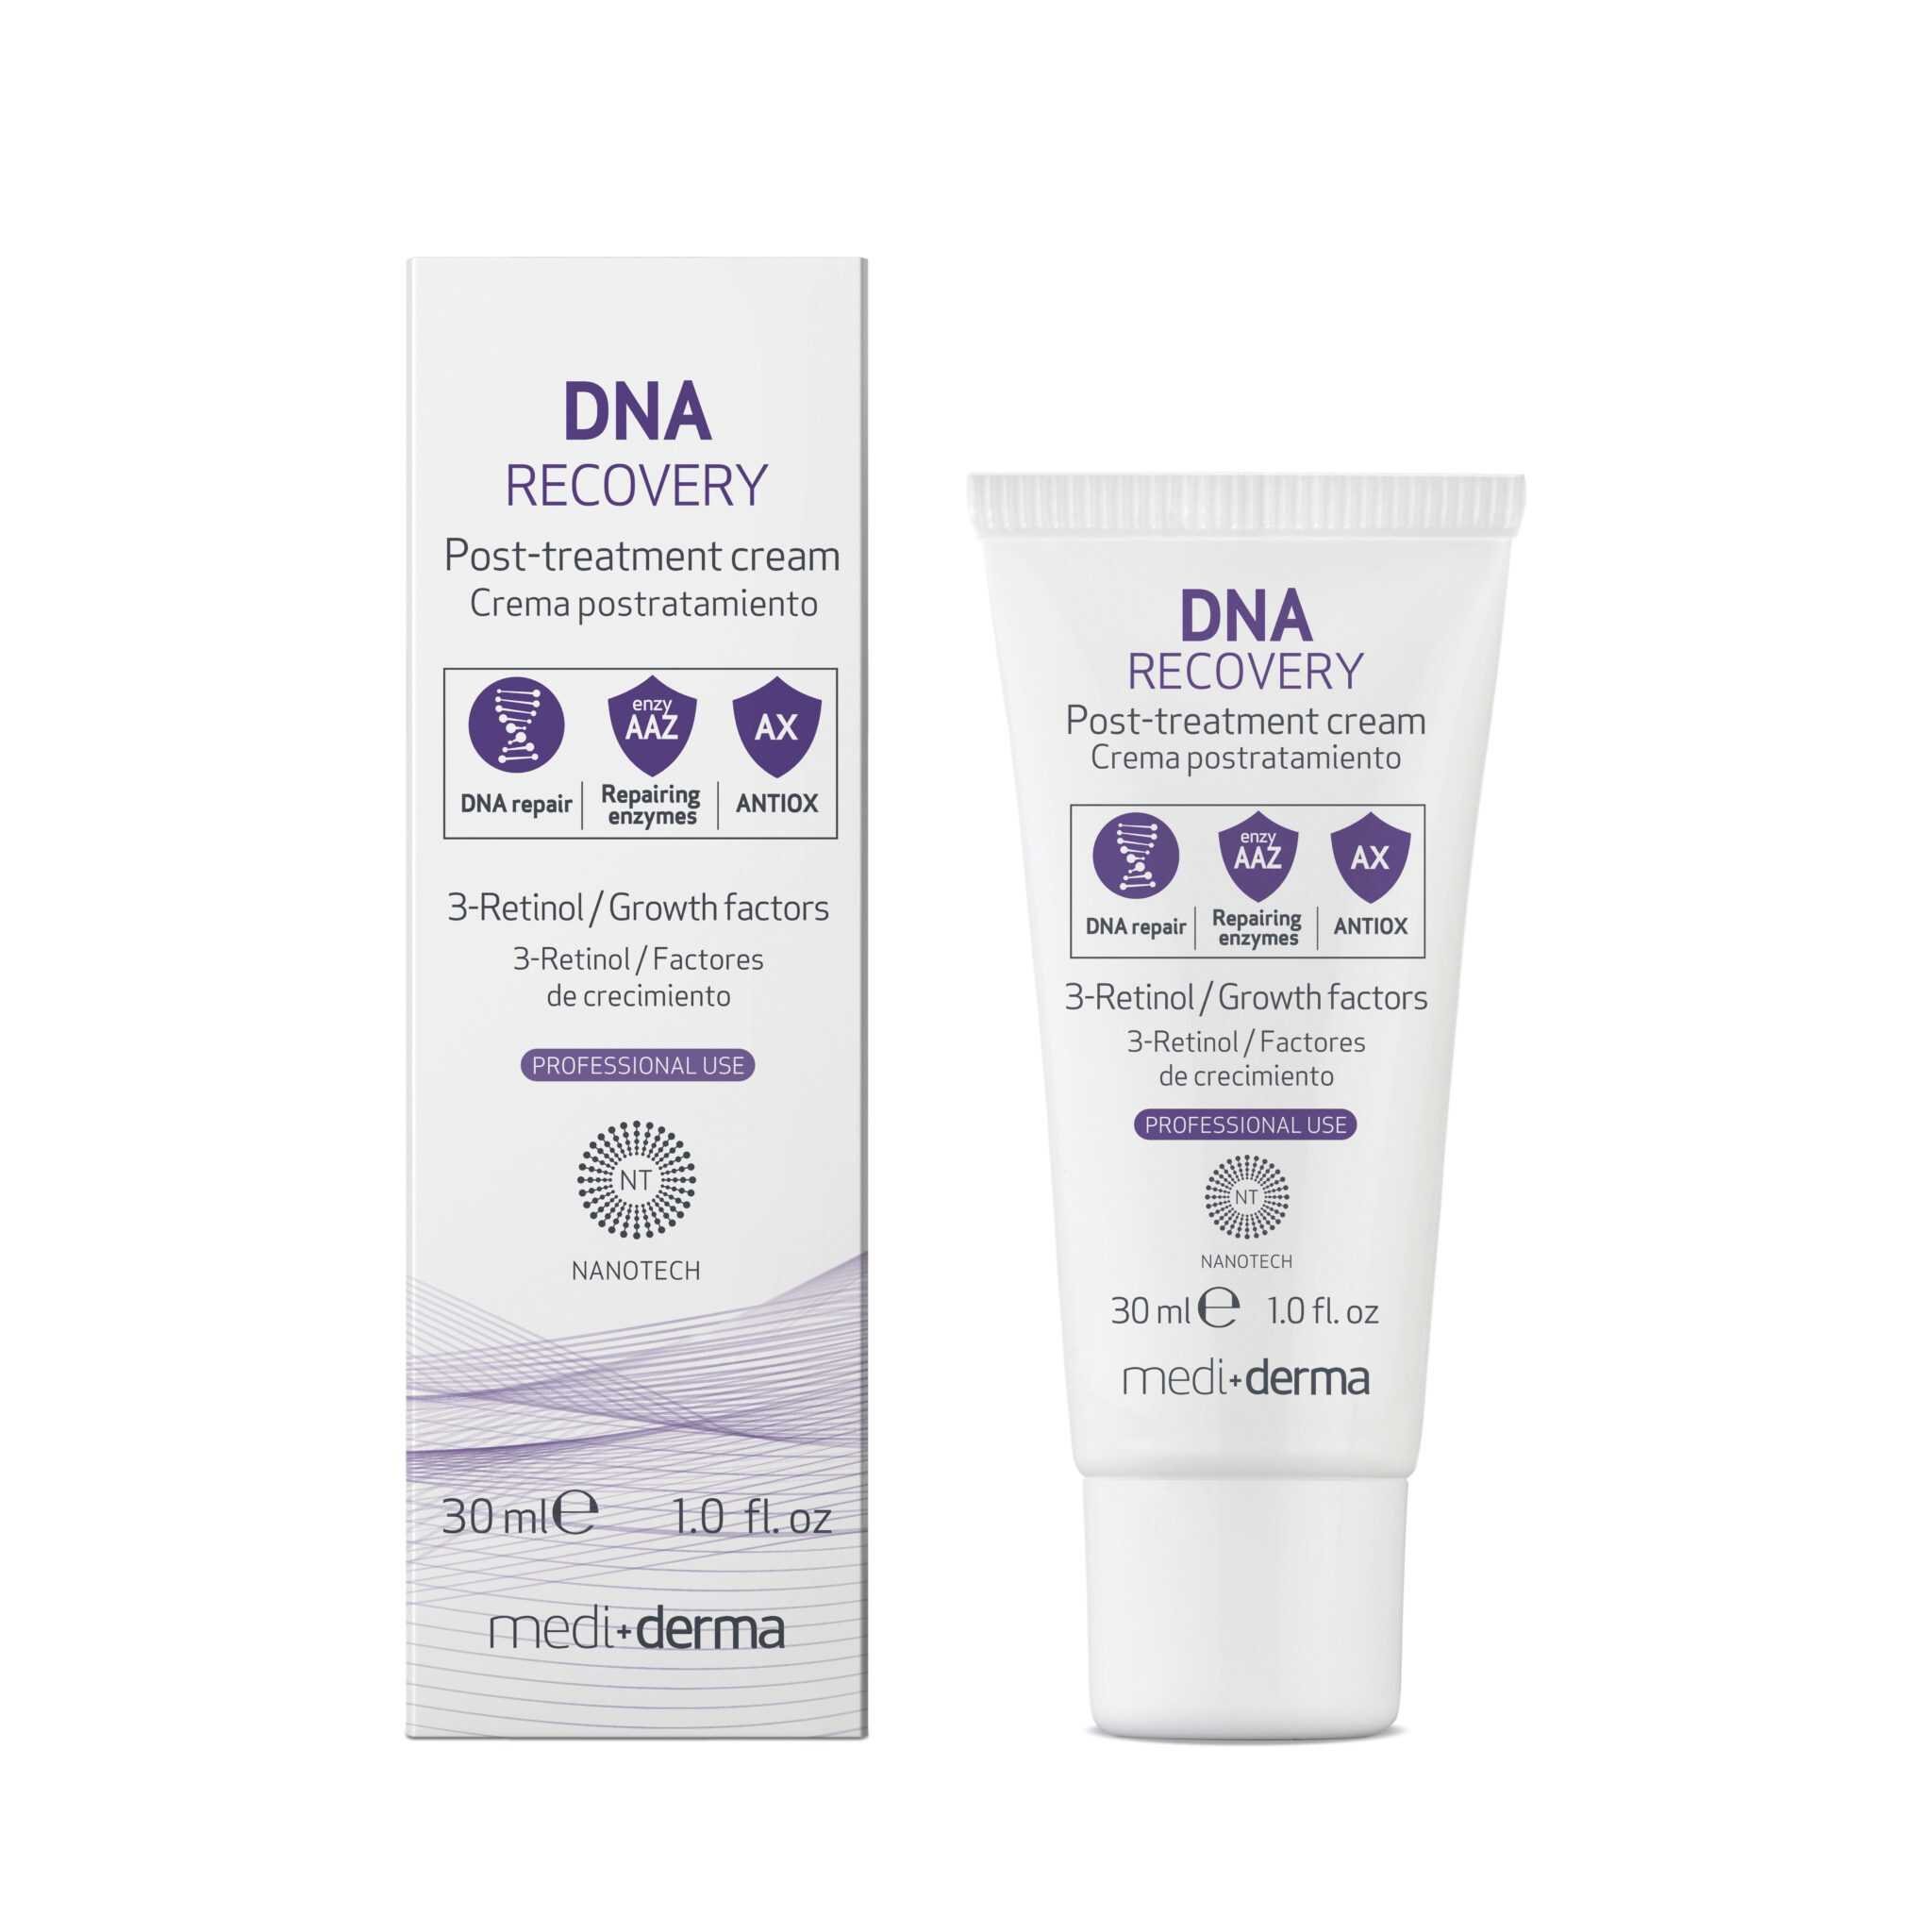 SESDERMA DNA Recovery Post-treatment Cream